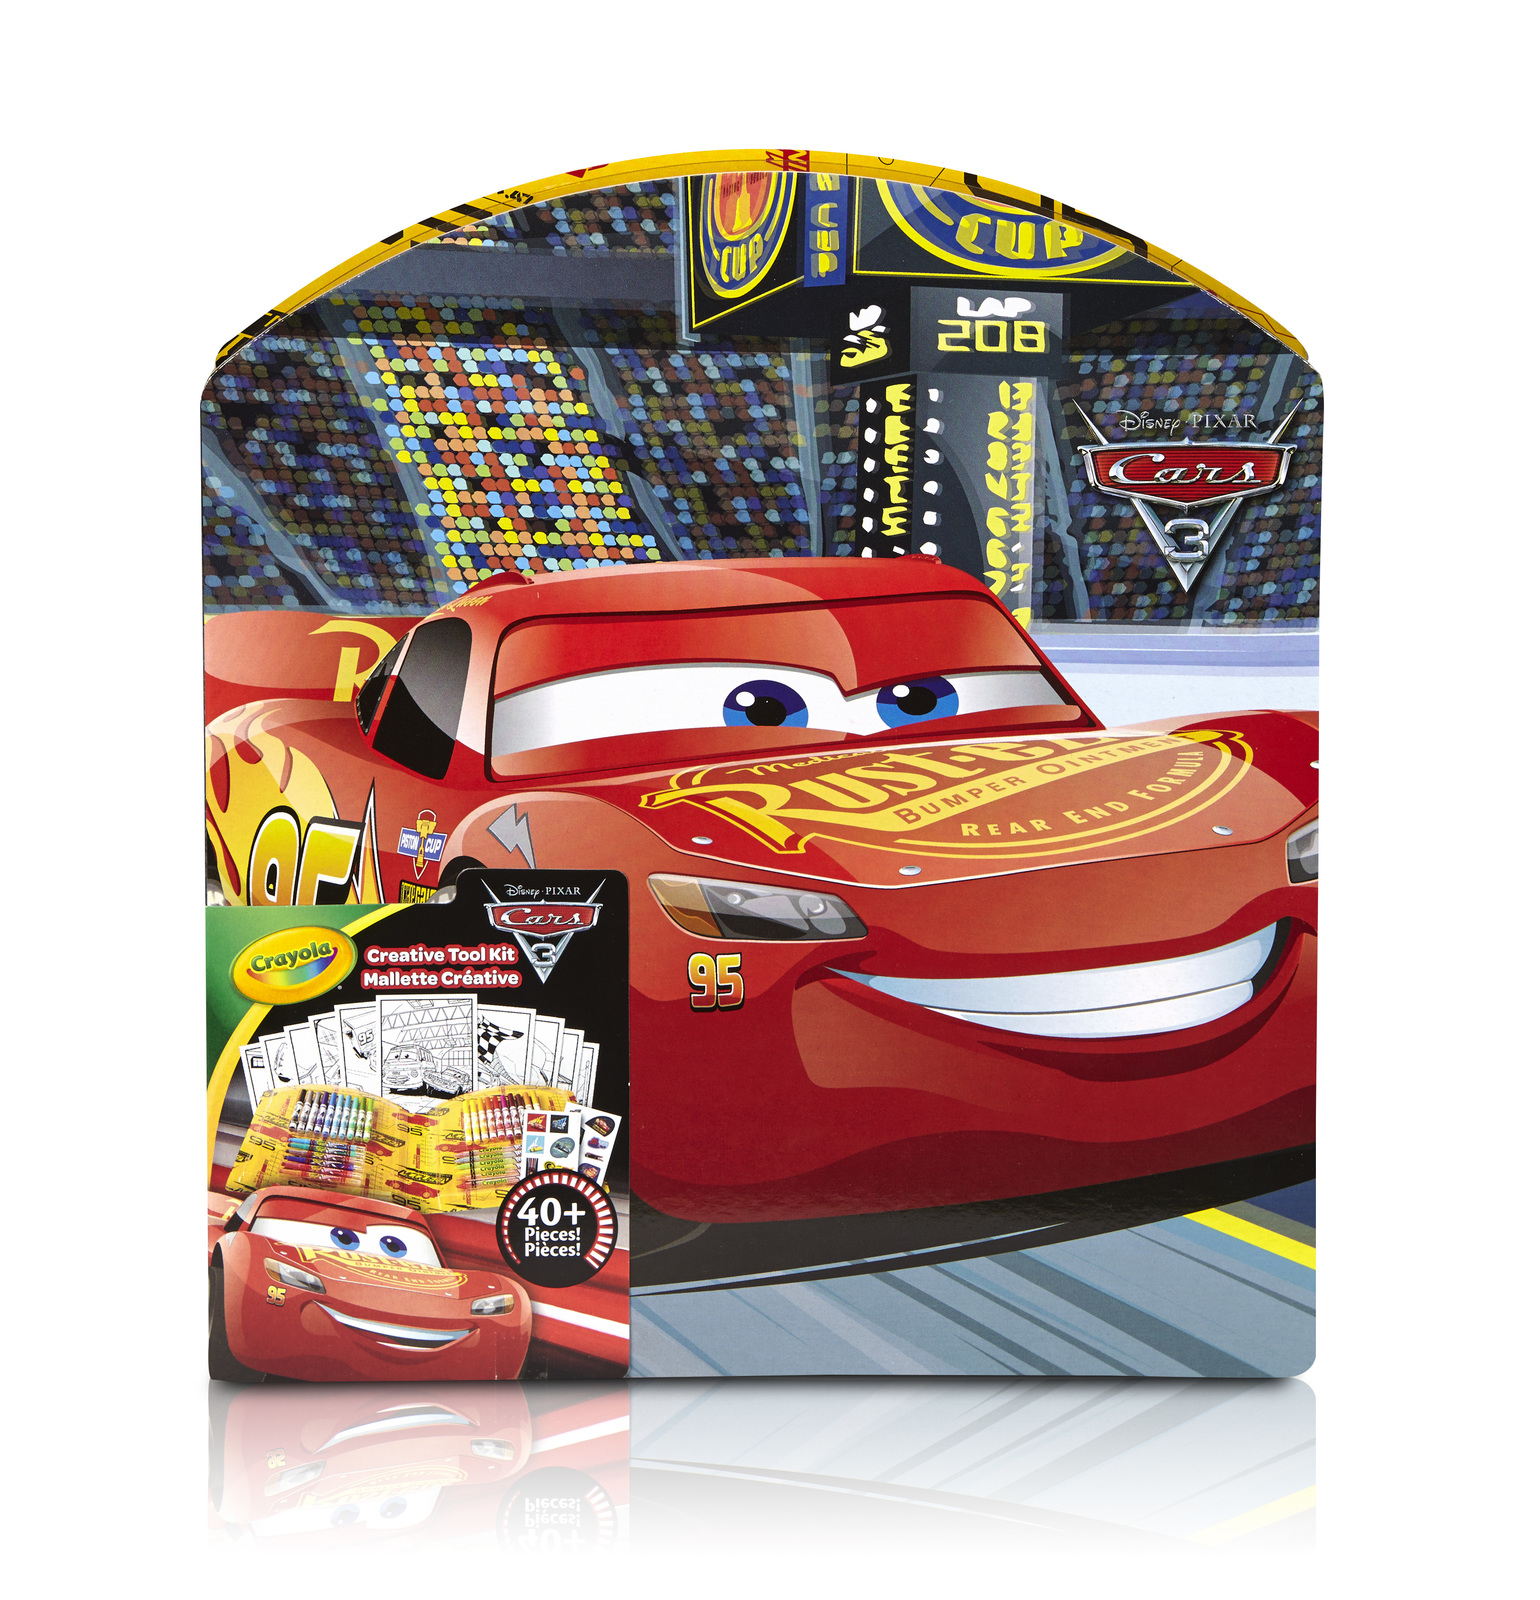 Crayola Cars Small Art Kit image